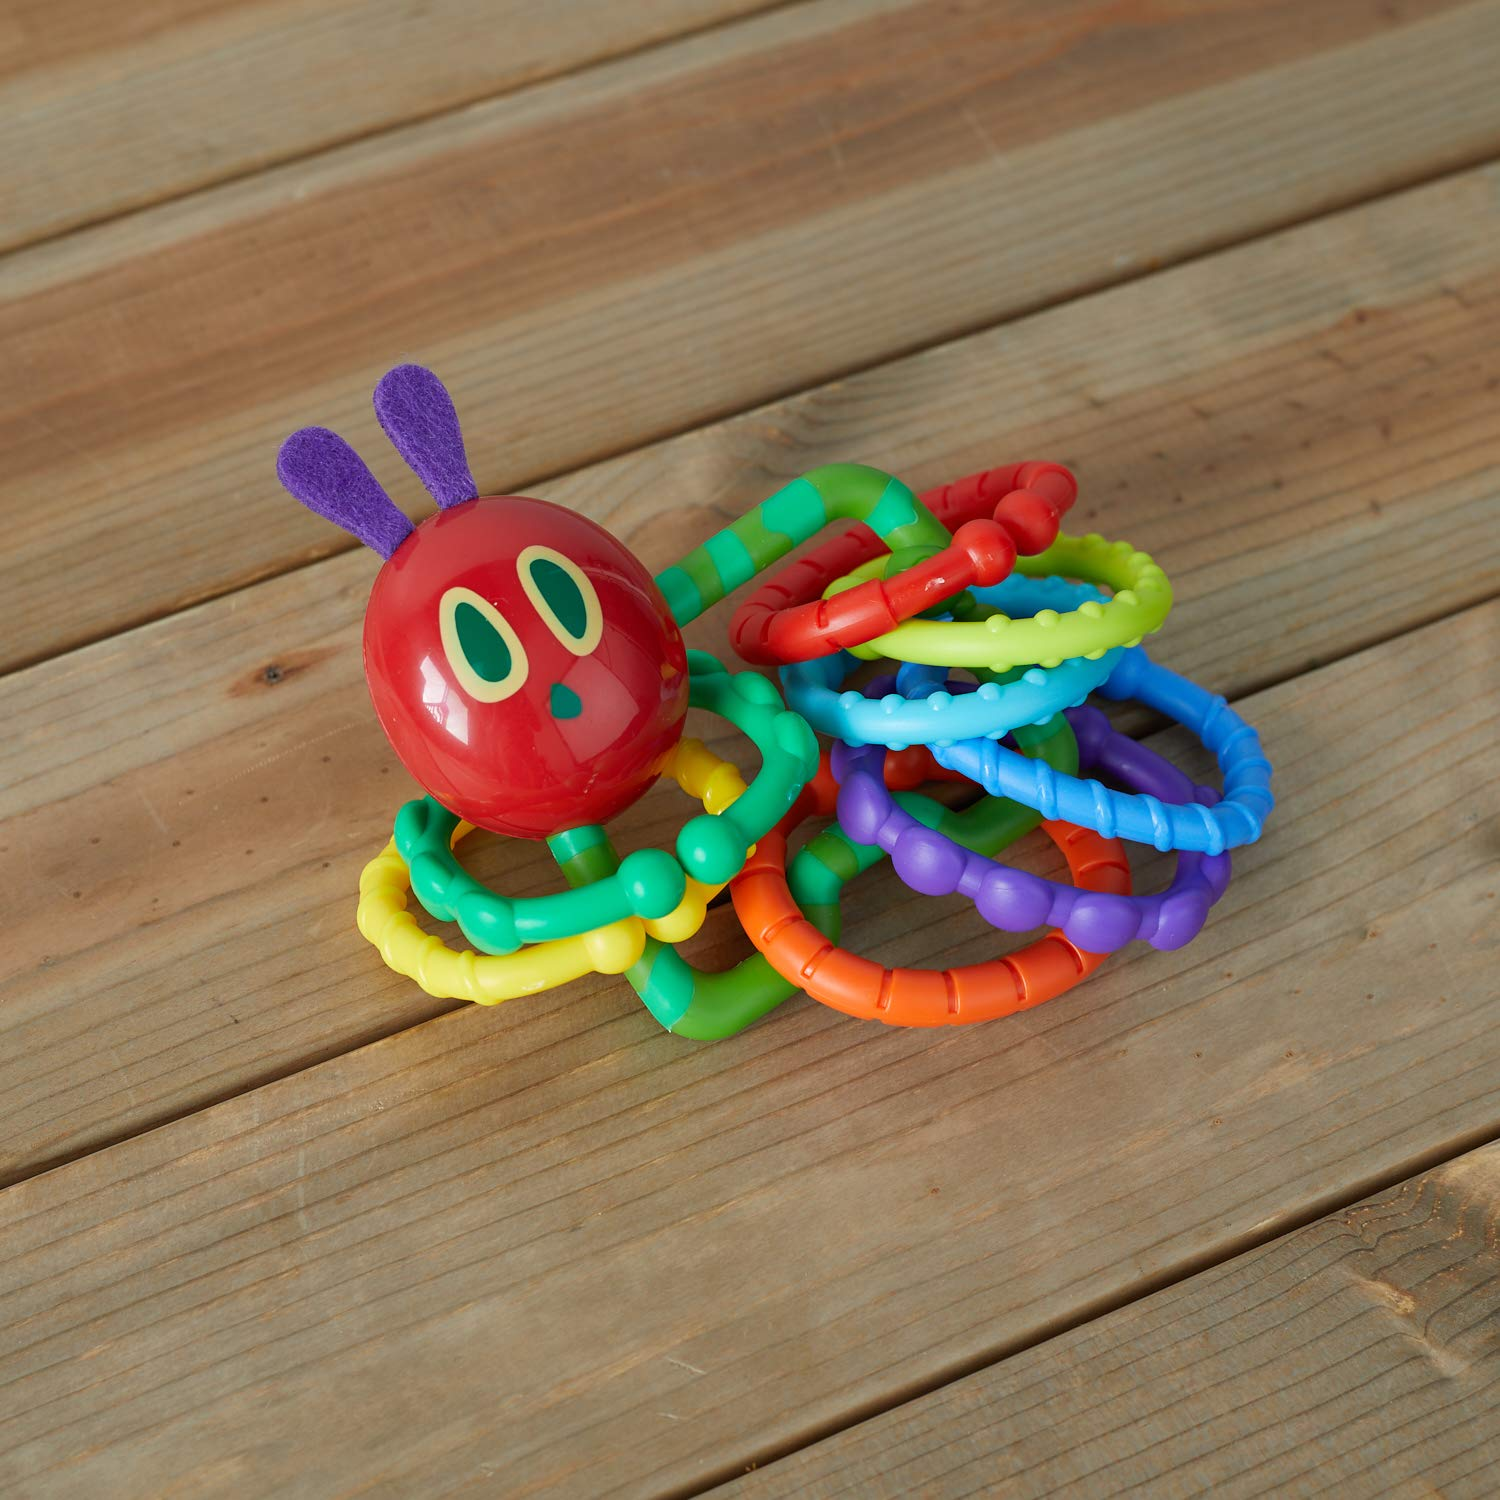 The Very Hungry Caterpillar Rattle Teether with Links The World of Eric Carle 96901 World of Eric Carle